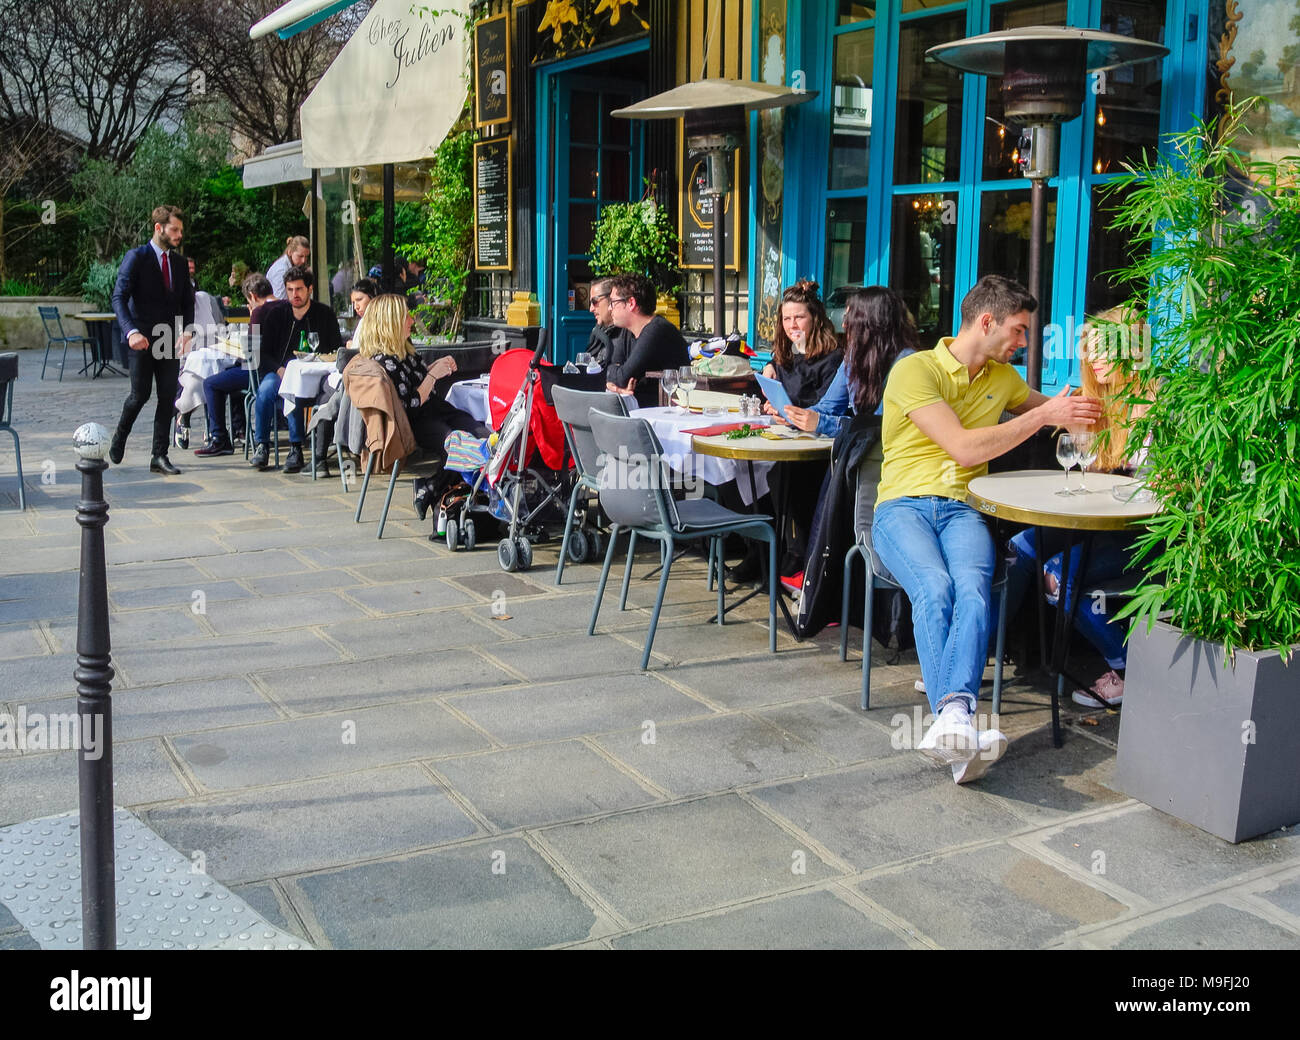 French people at cafe, Paris, France - Stock Image